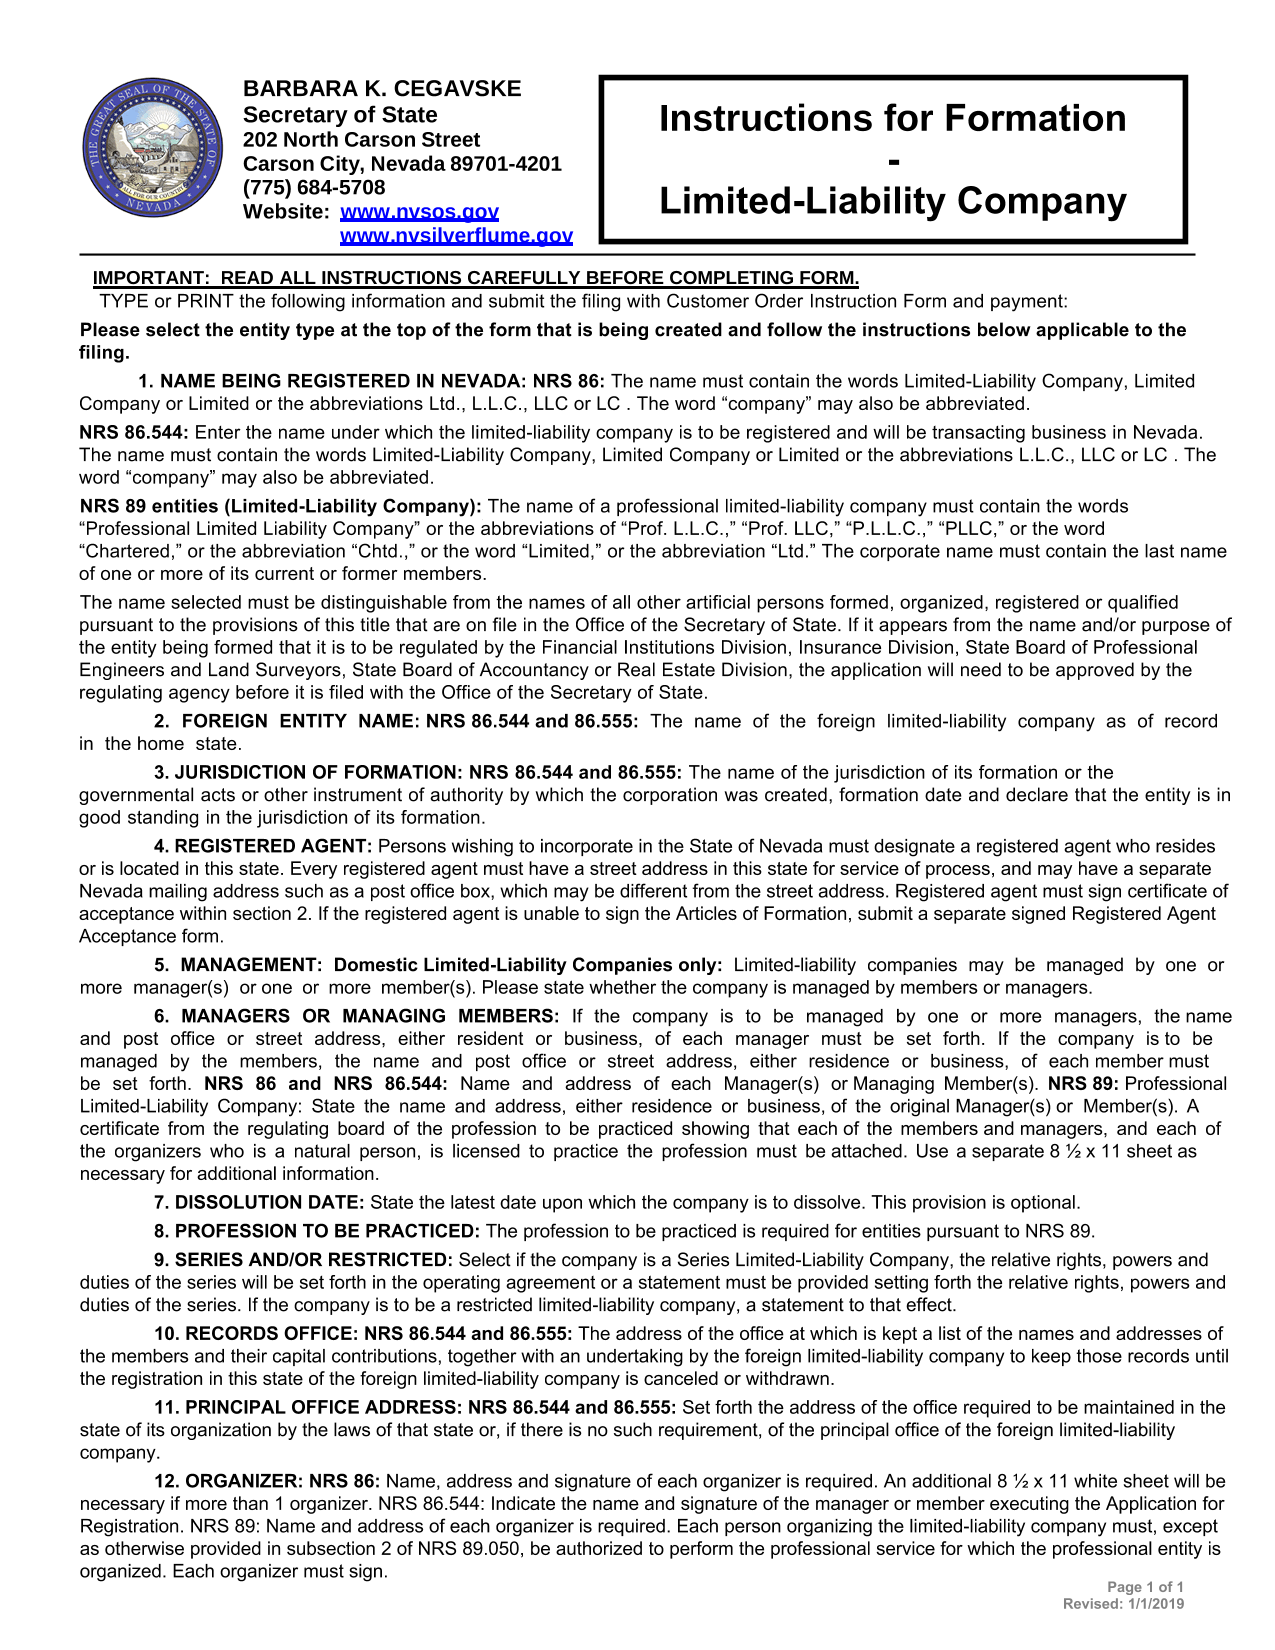 Nevada LLC Articles of Organization